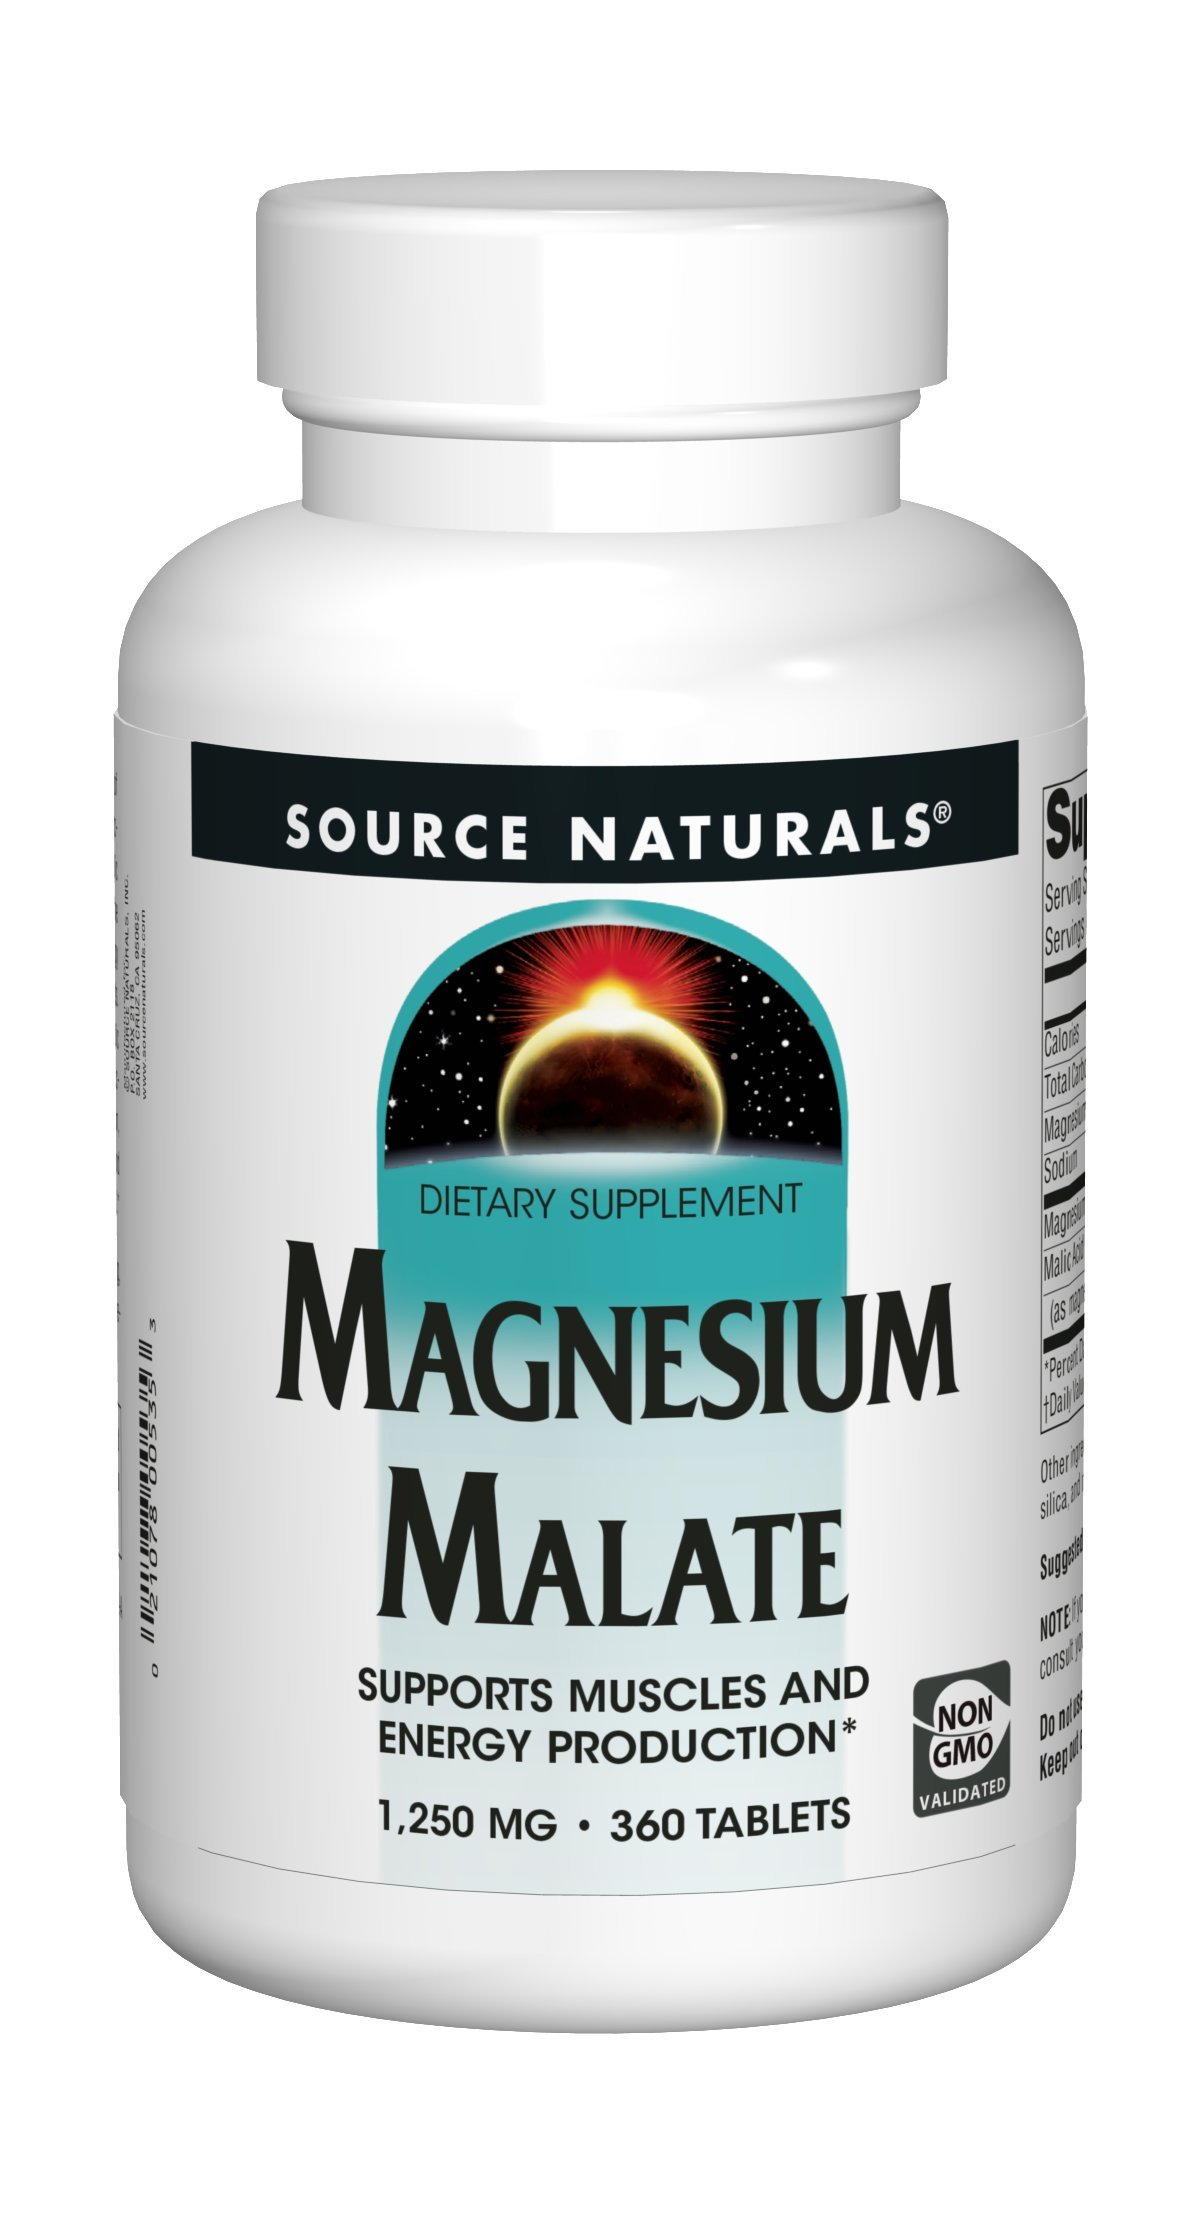 Source Naturals Magnesium Malate 1250mg Supplement Supports Natural Muscle Function & Health, Energy Production & Healthy Skin - Essential, Bio-Available Magnesium Malic Acid Supplement - 360 Tablets